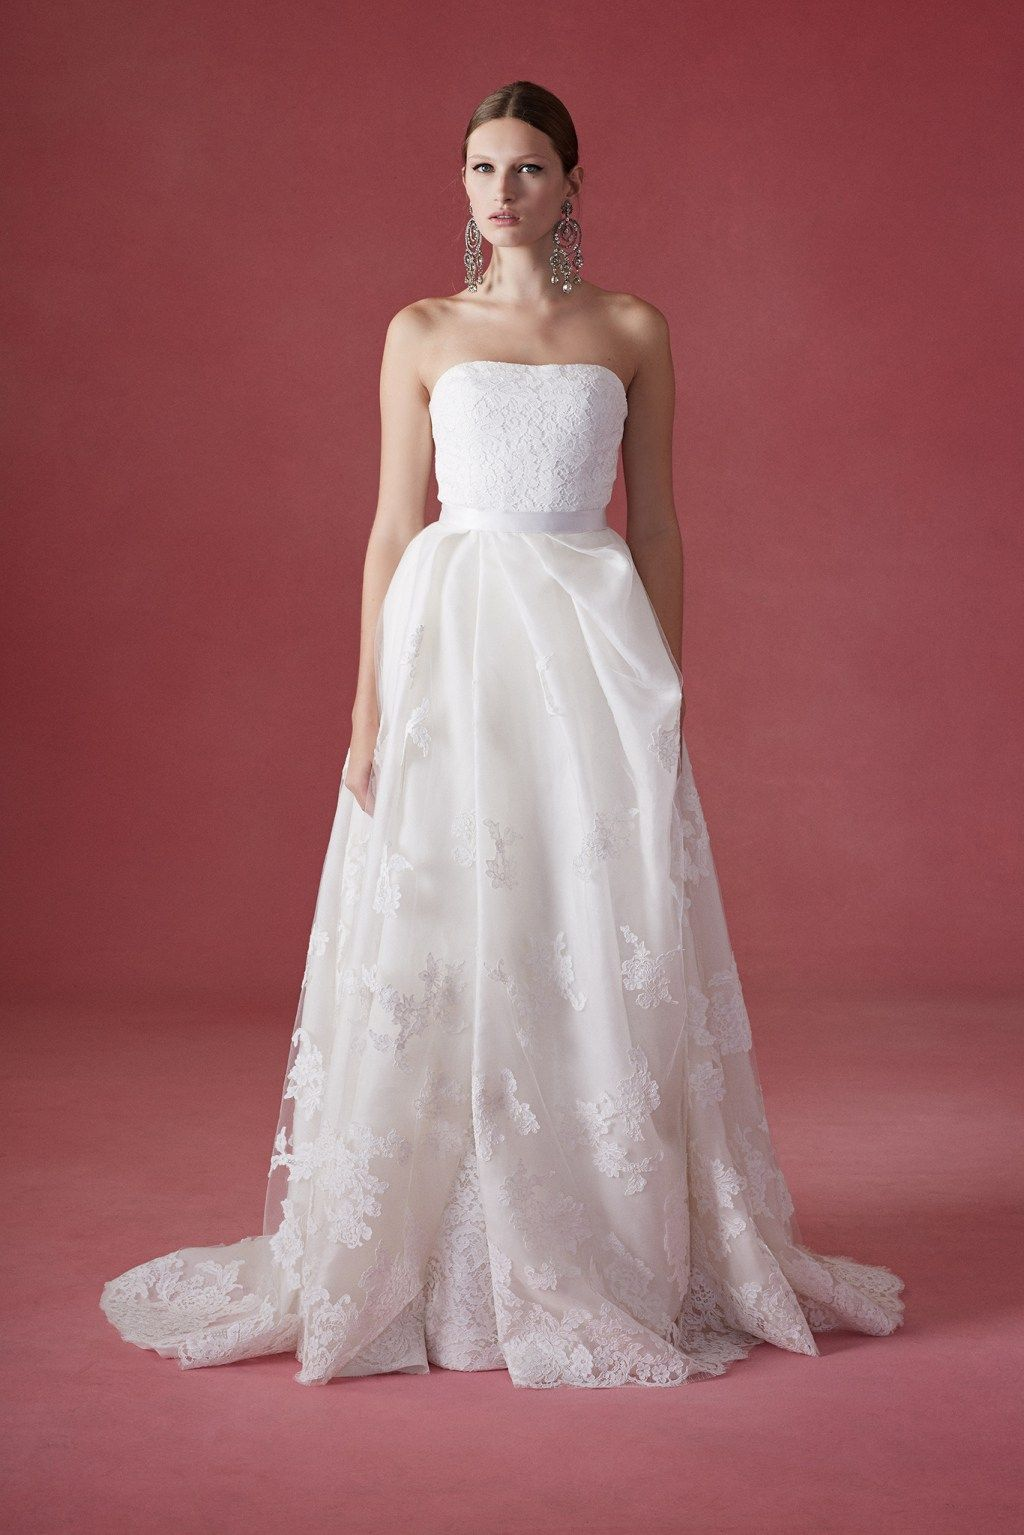 Copping, who has taken over the helm of things after the loss of the designer for whom the label is named, showcased a delightful Oscar De La Renta Bridal Fall 2016 collection at Bridal Fashion Week. Description from stylevitae.com. I searched for this on bing.com/images